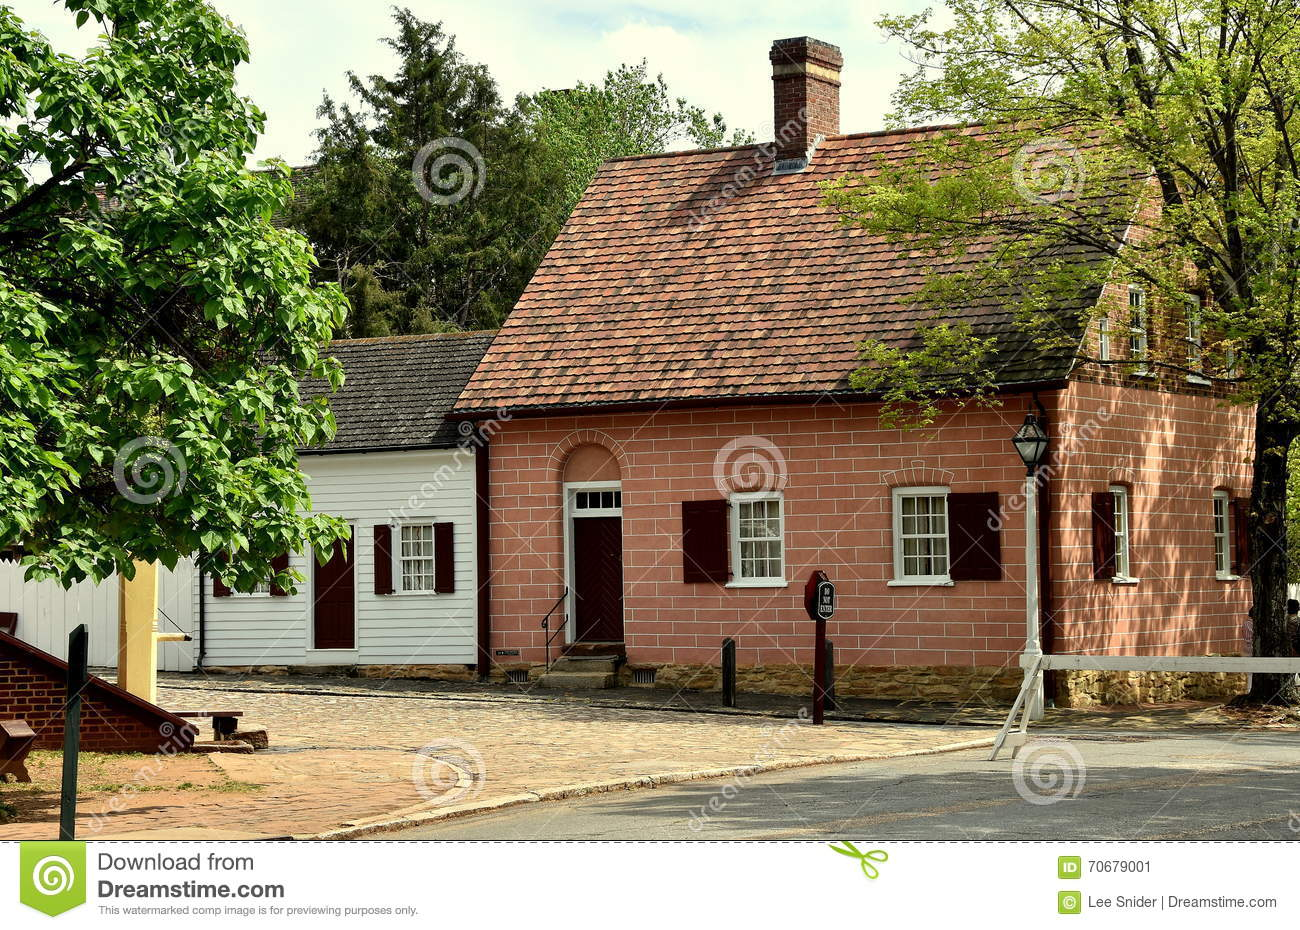 Old salem nc 18th century moravian houses editorial for Century home builders